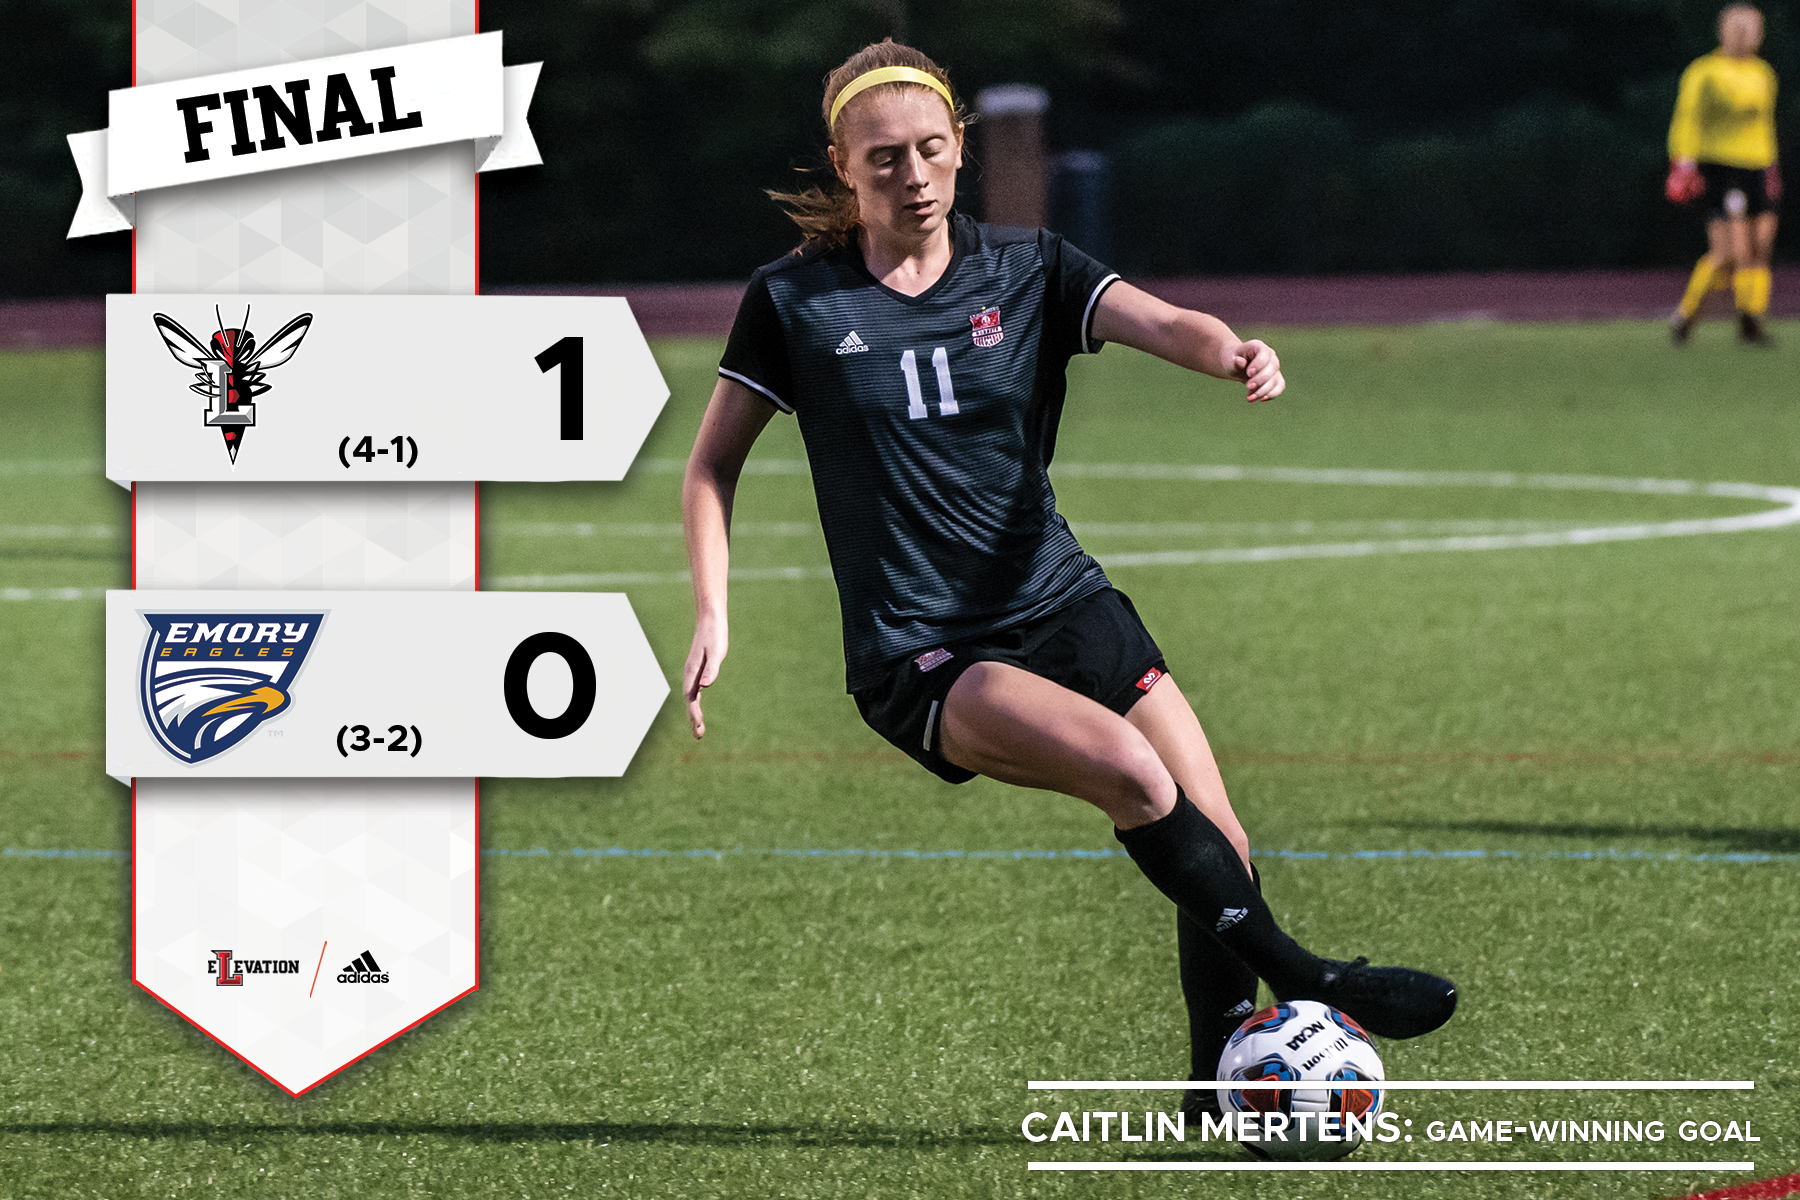 Graphic showing 1-0 final score Lynchburg over Emory U. Caitlin Mertens driblles the ball in the photo.